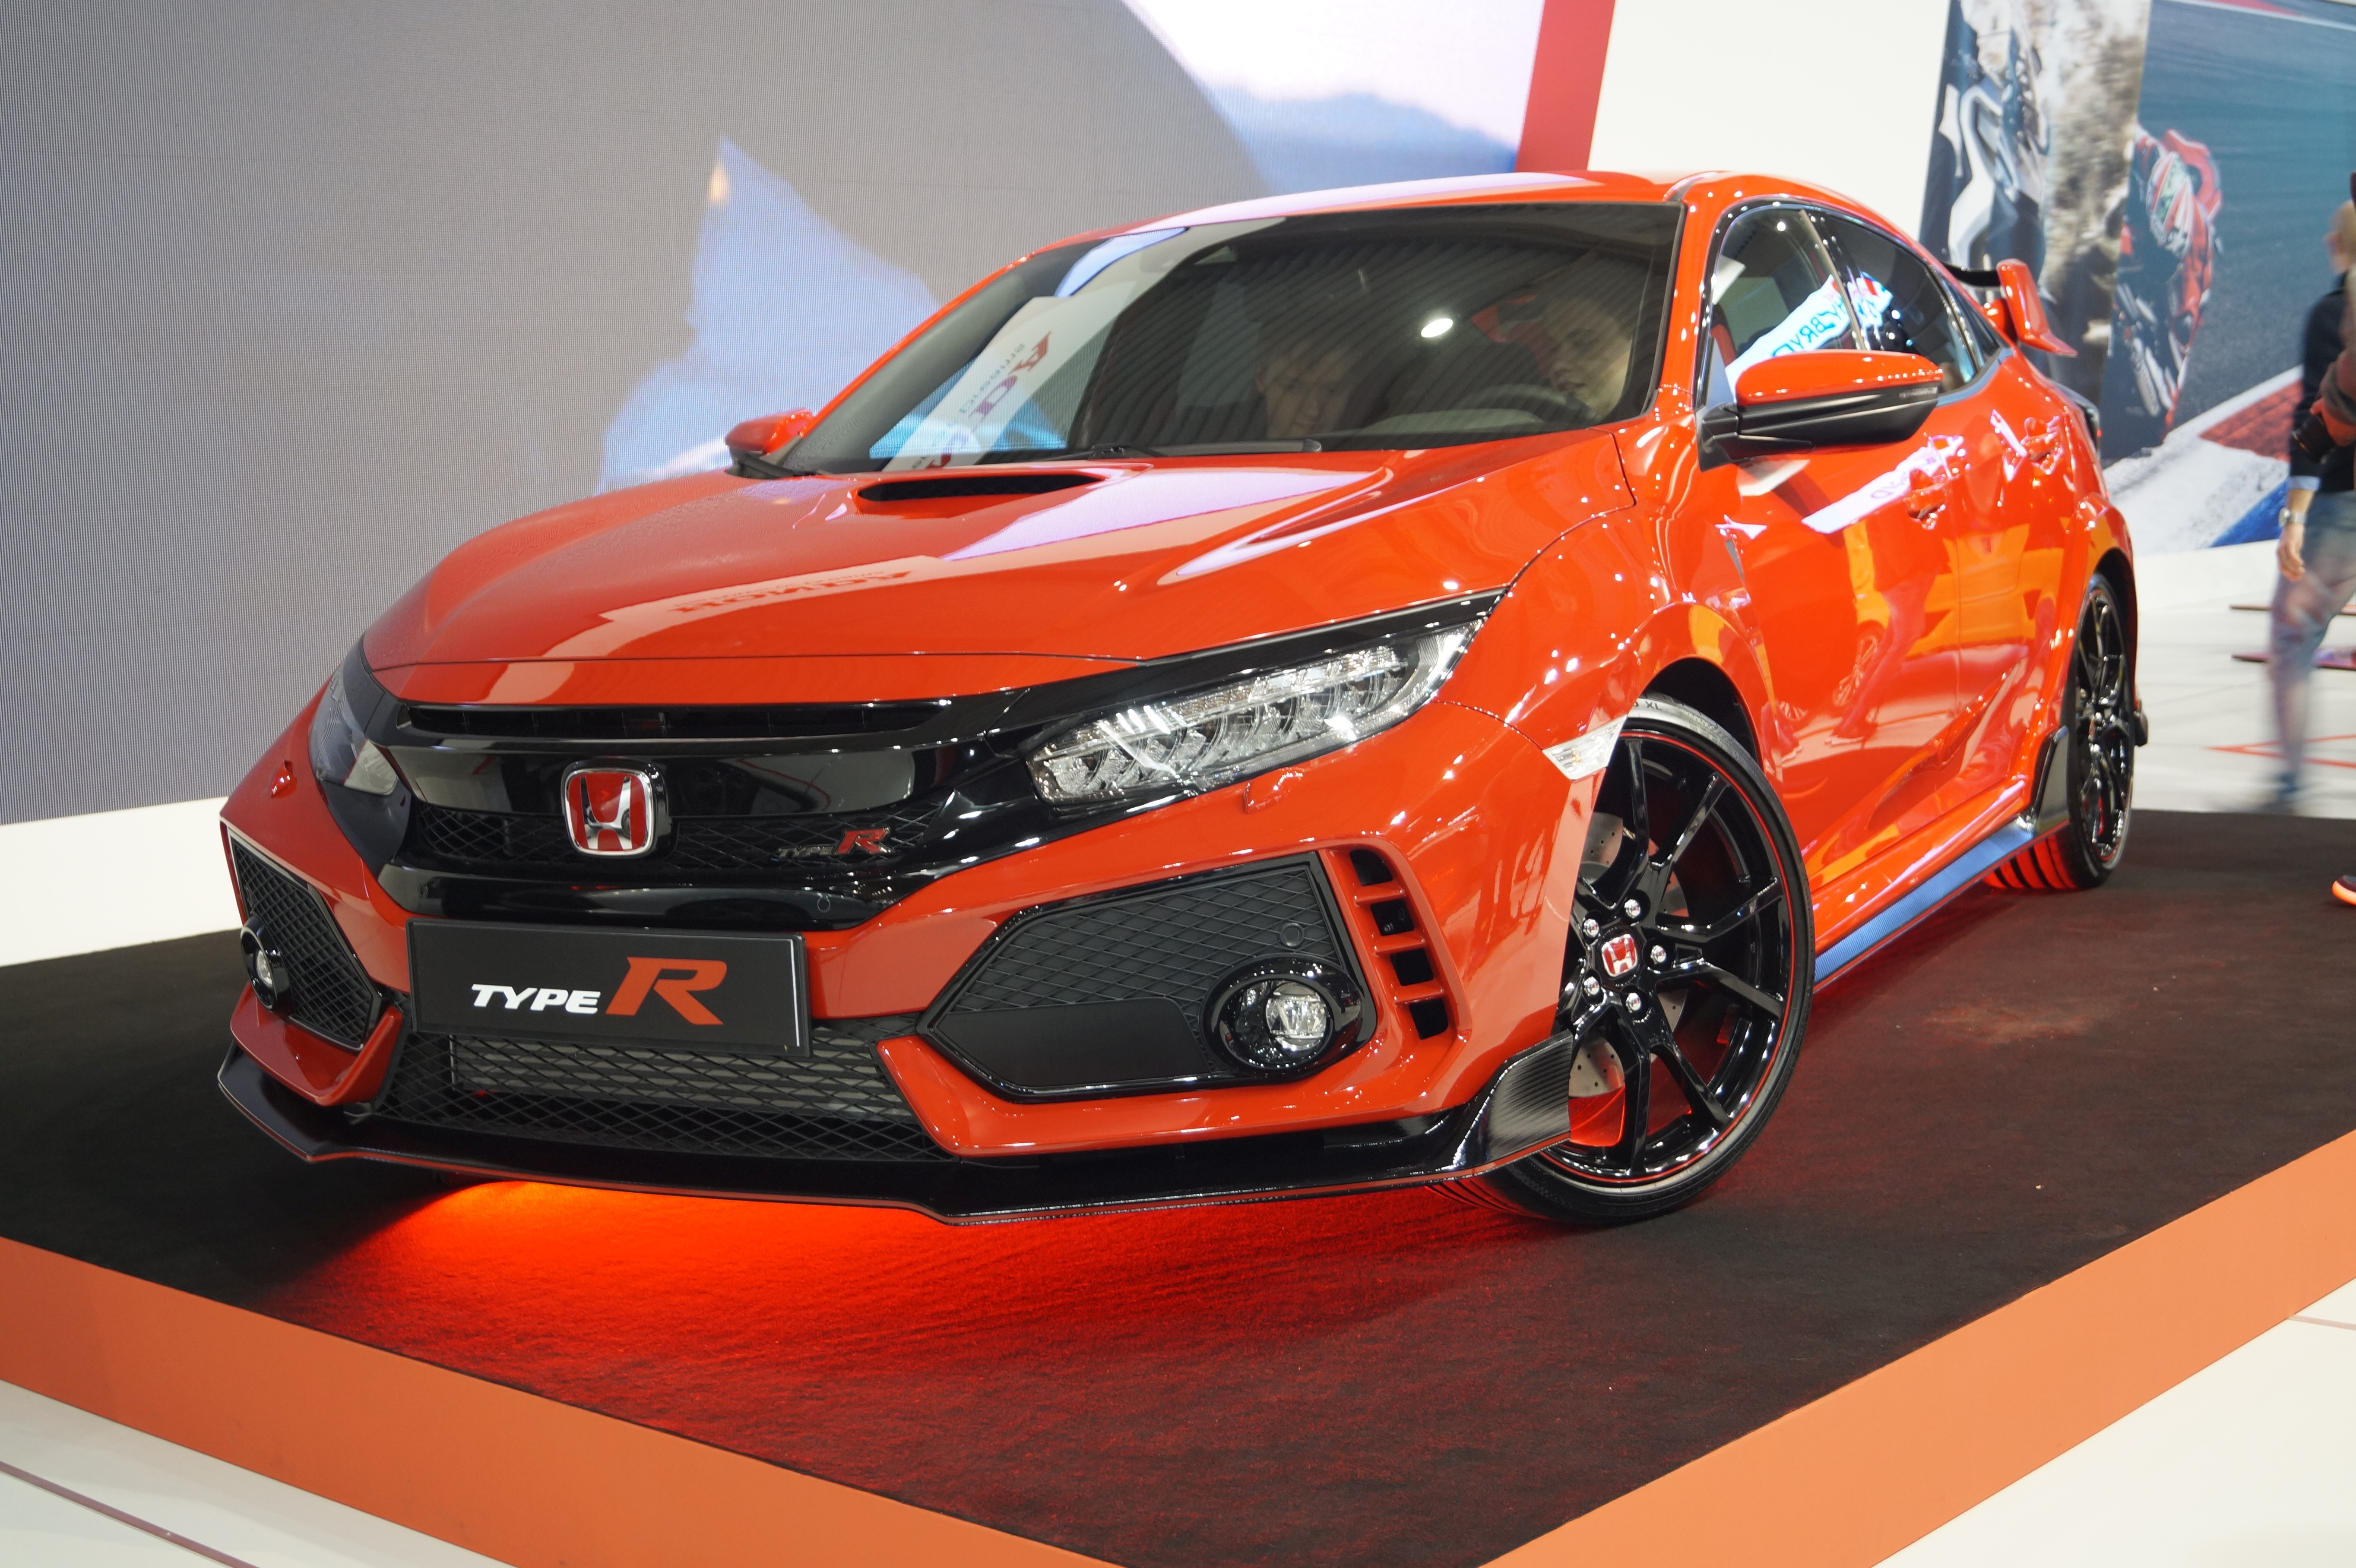 File:Honda Civic Type-R (MSP17).jpg - Wikimedia Commons